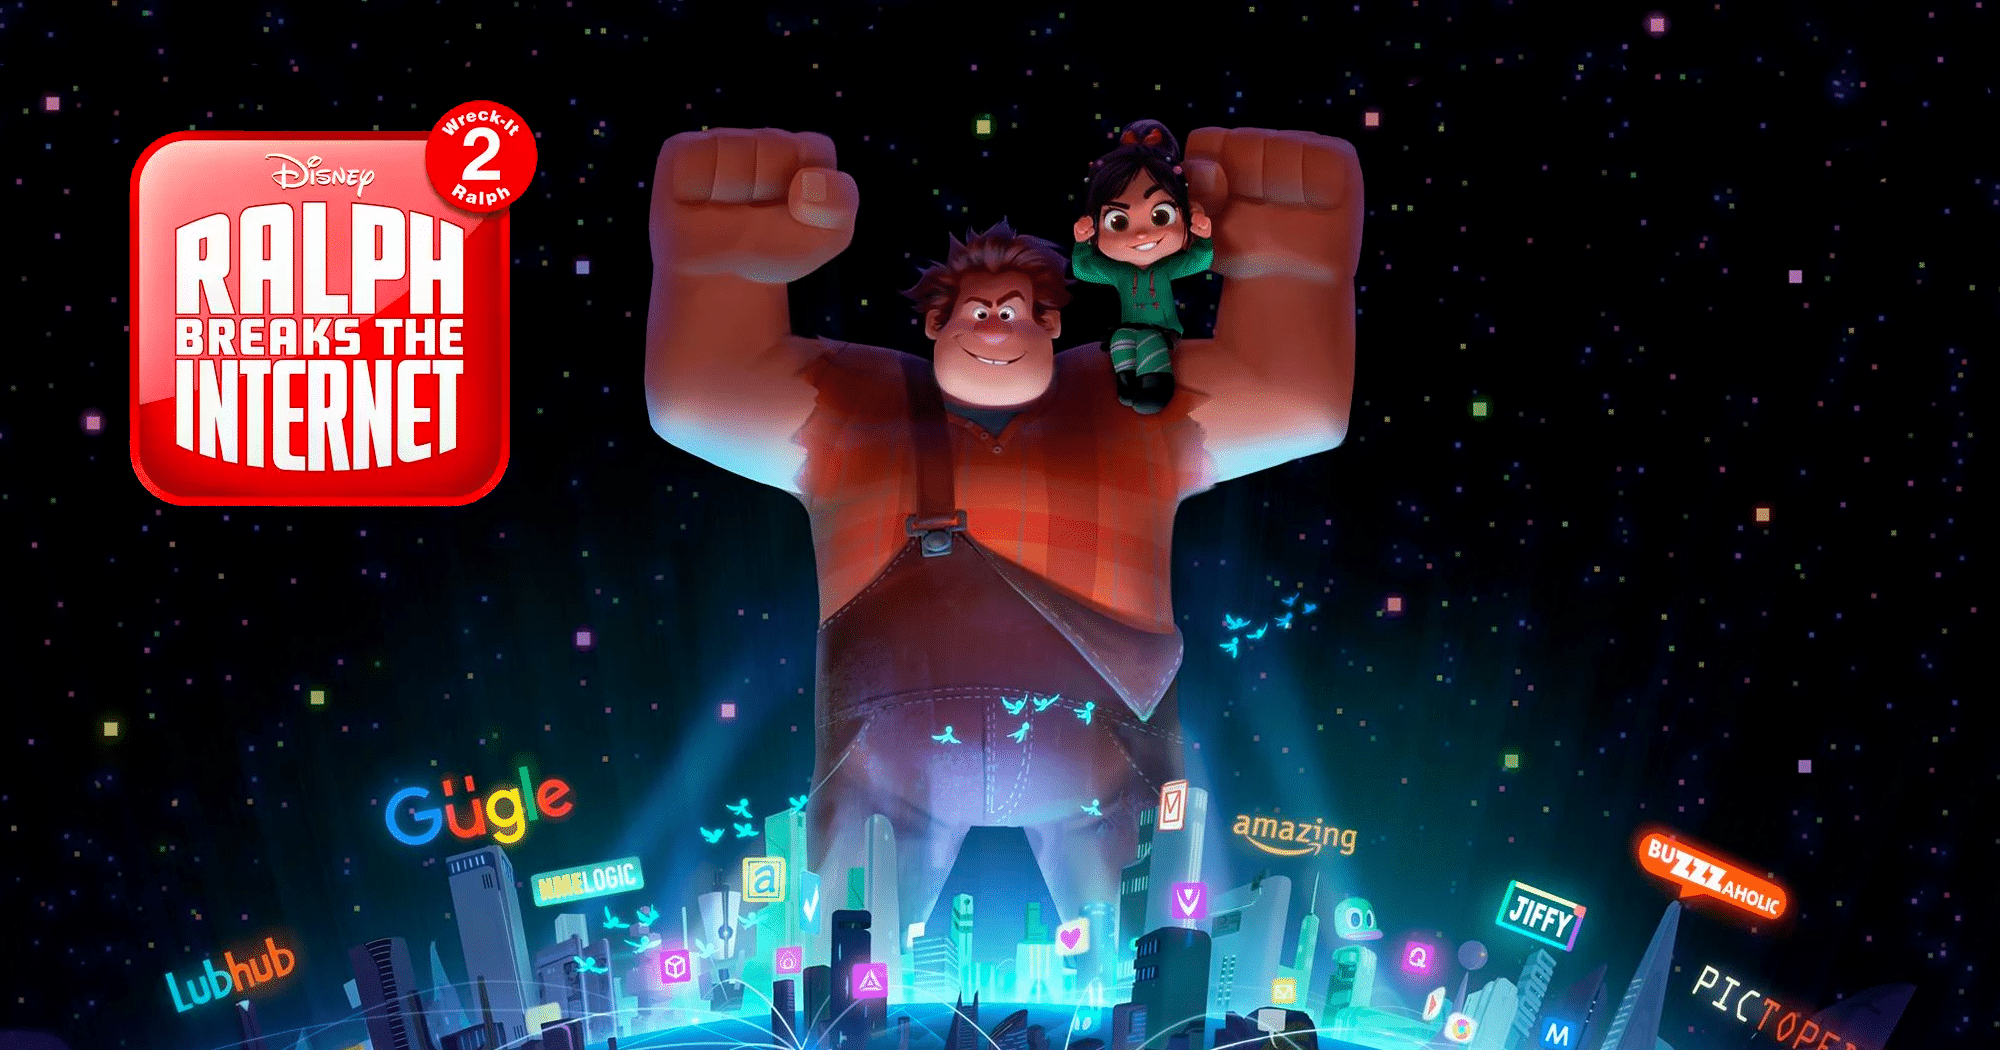 Walt Disney Animation Studios avanzaron el título de Wreck-It Ralph 2 durante su presentación en CinemaCon en Las Vegas: Ralph Breaks the Internet - http://j.mp/2oaAVH5